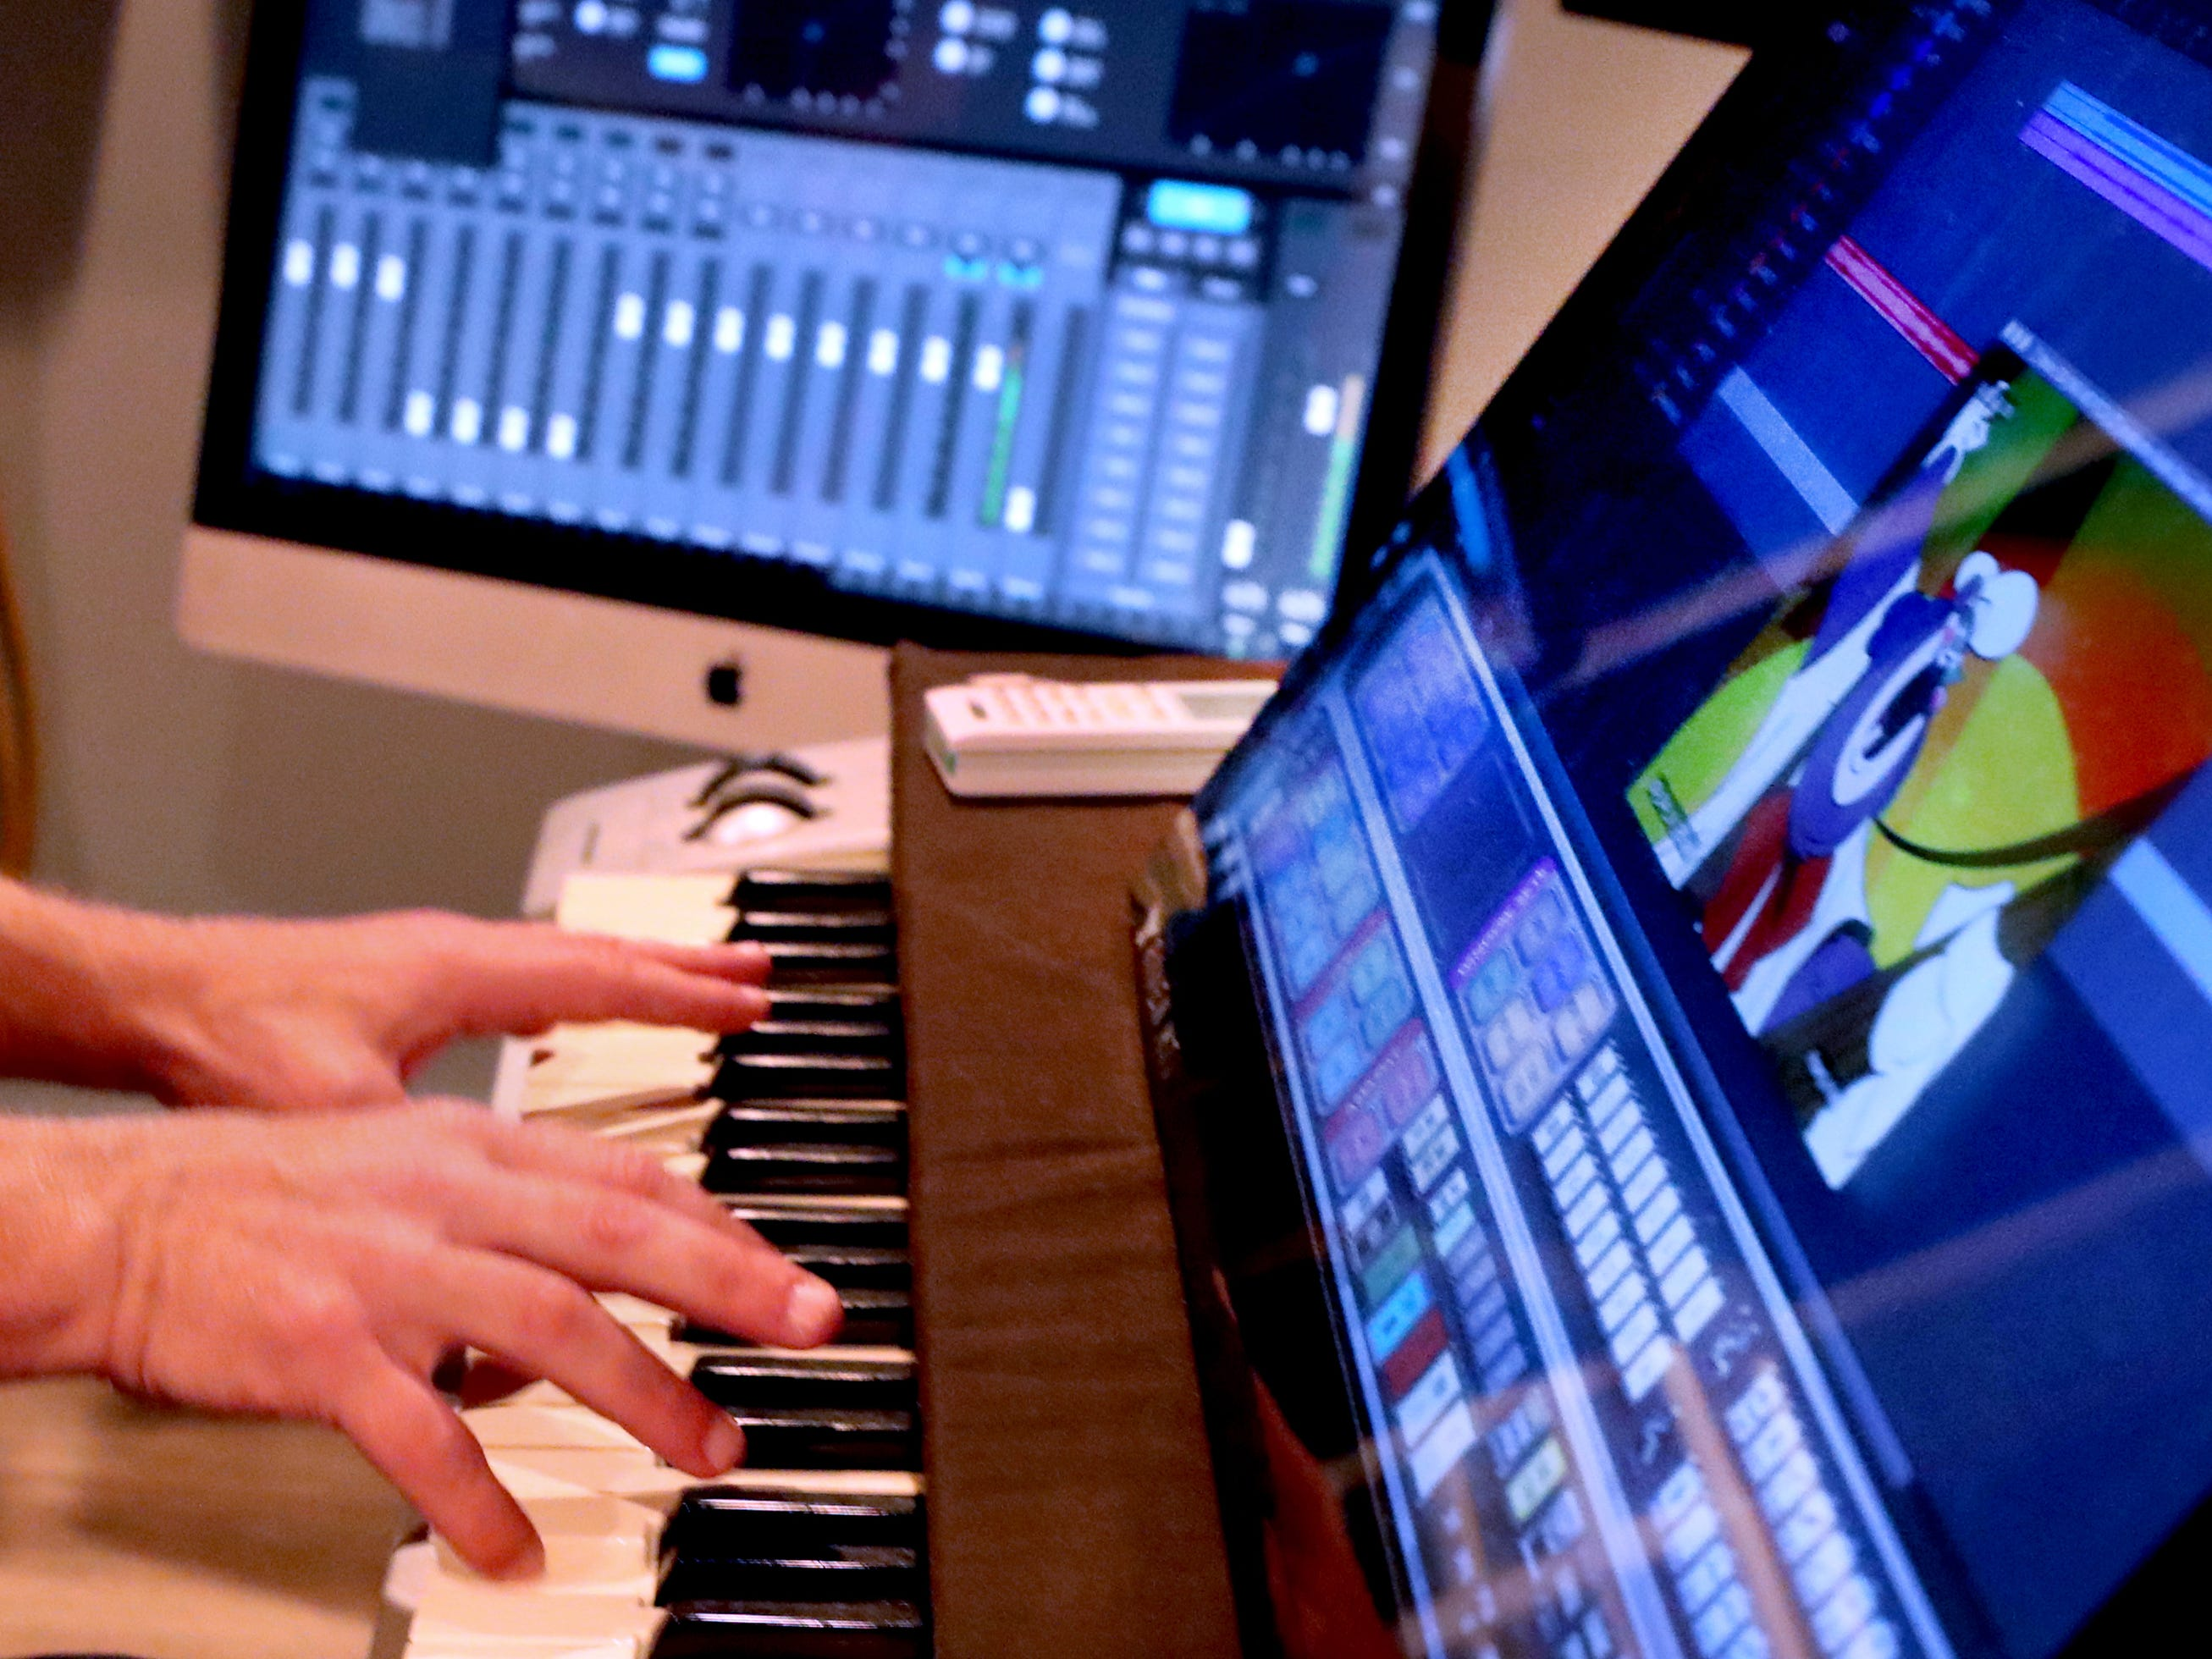 Andy Harper shows how he can score music to a particular track of video or animation in his studio Limitedwave Recordings on Wednesday April 10, 2019.